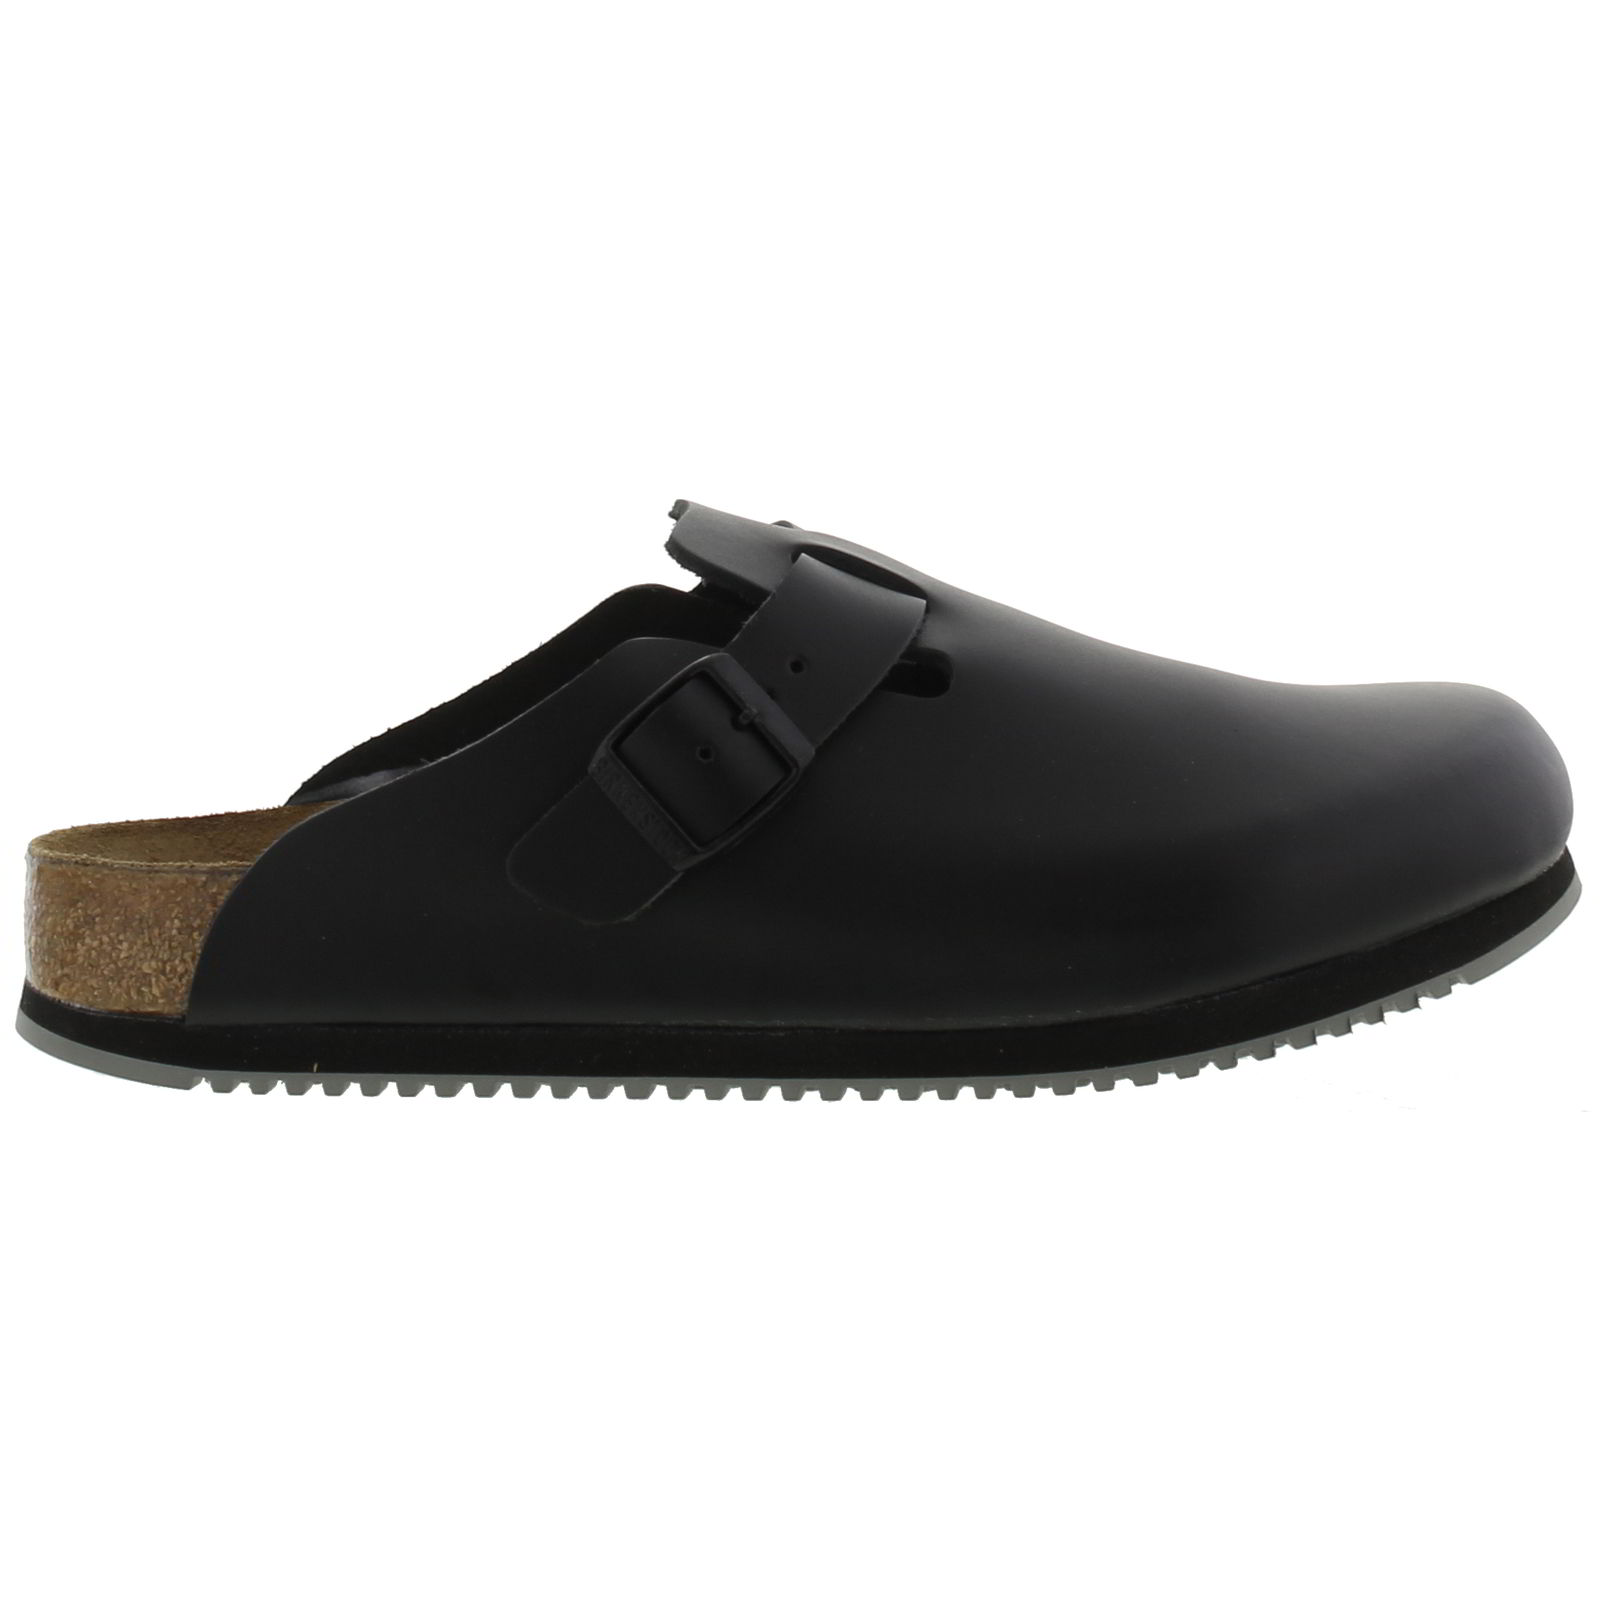 This style has the Birkenstock slip resistant super grip rubber outsole  which offers superb grip and long lasting wear. The Birkenstock Boston  Super Grip is ... 9037f42e389